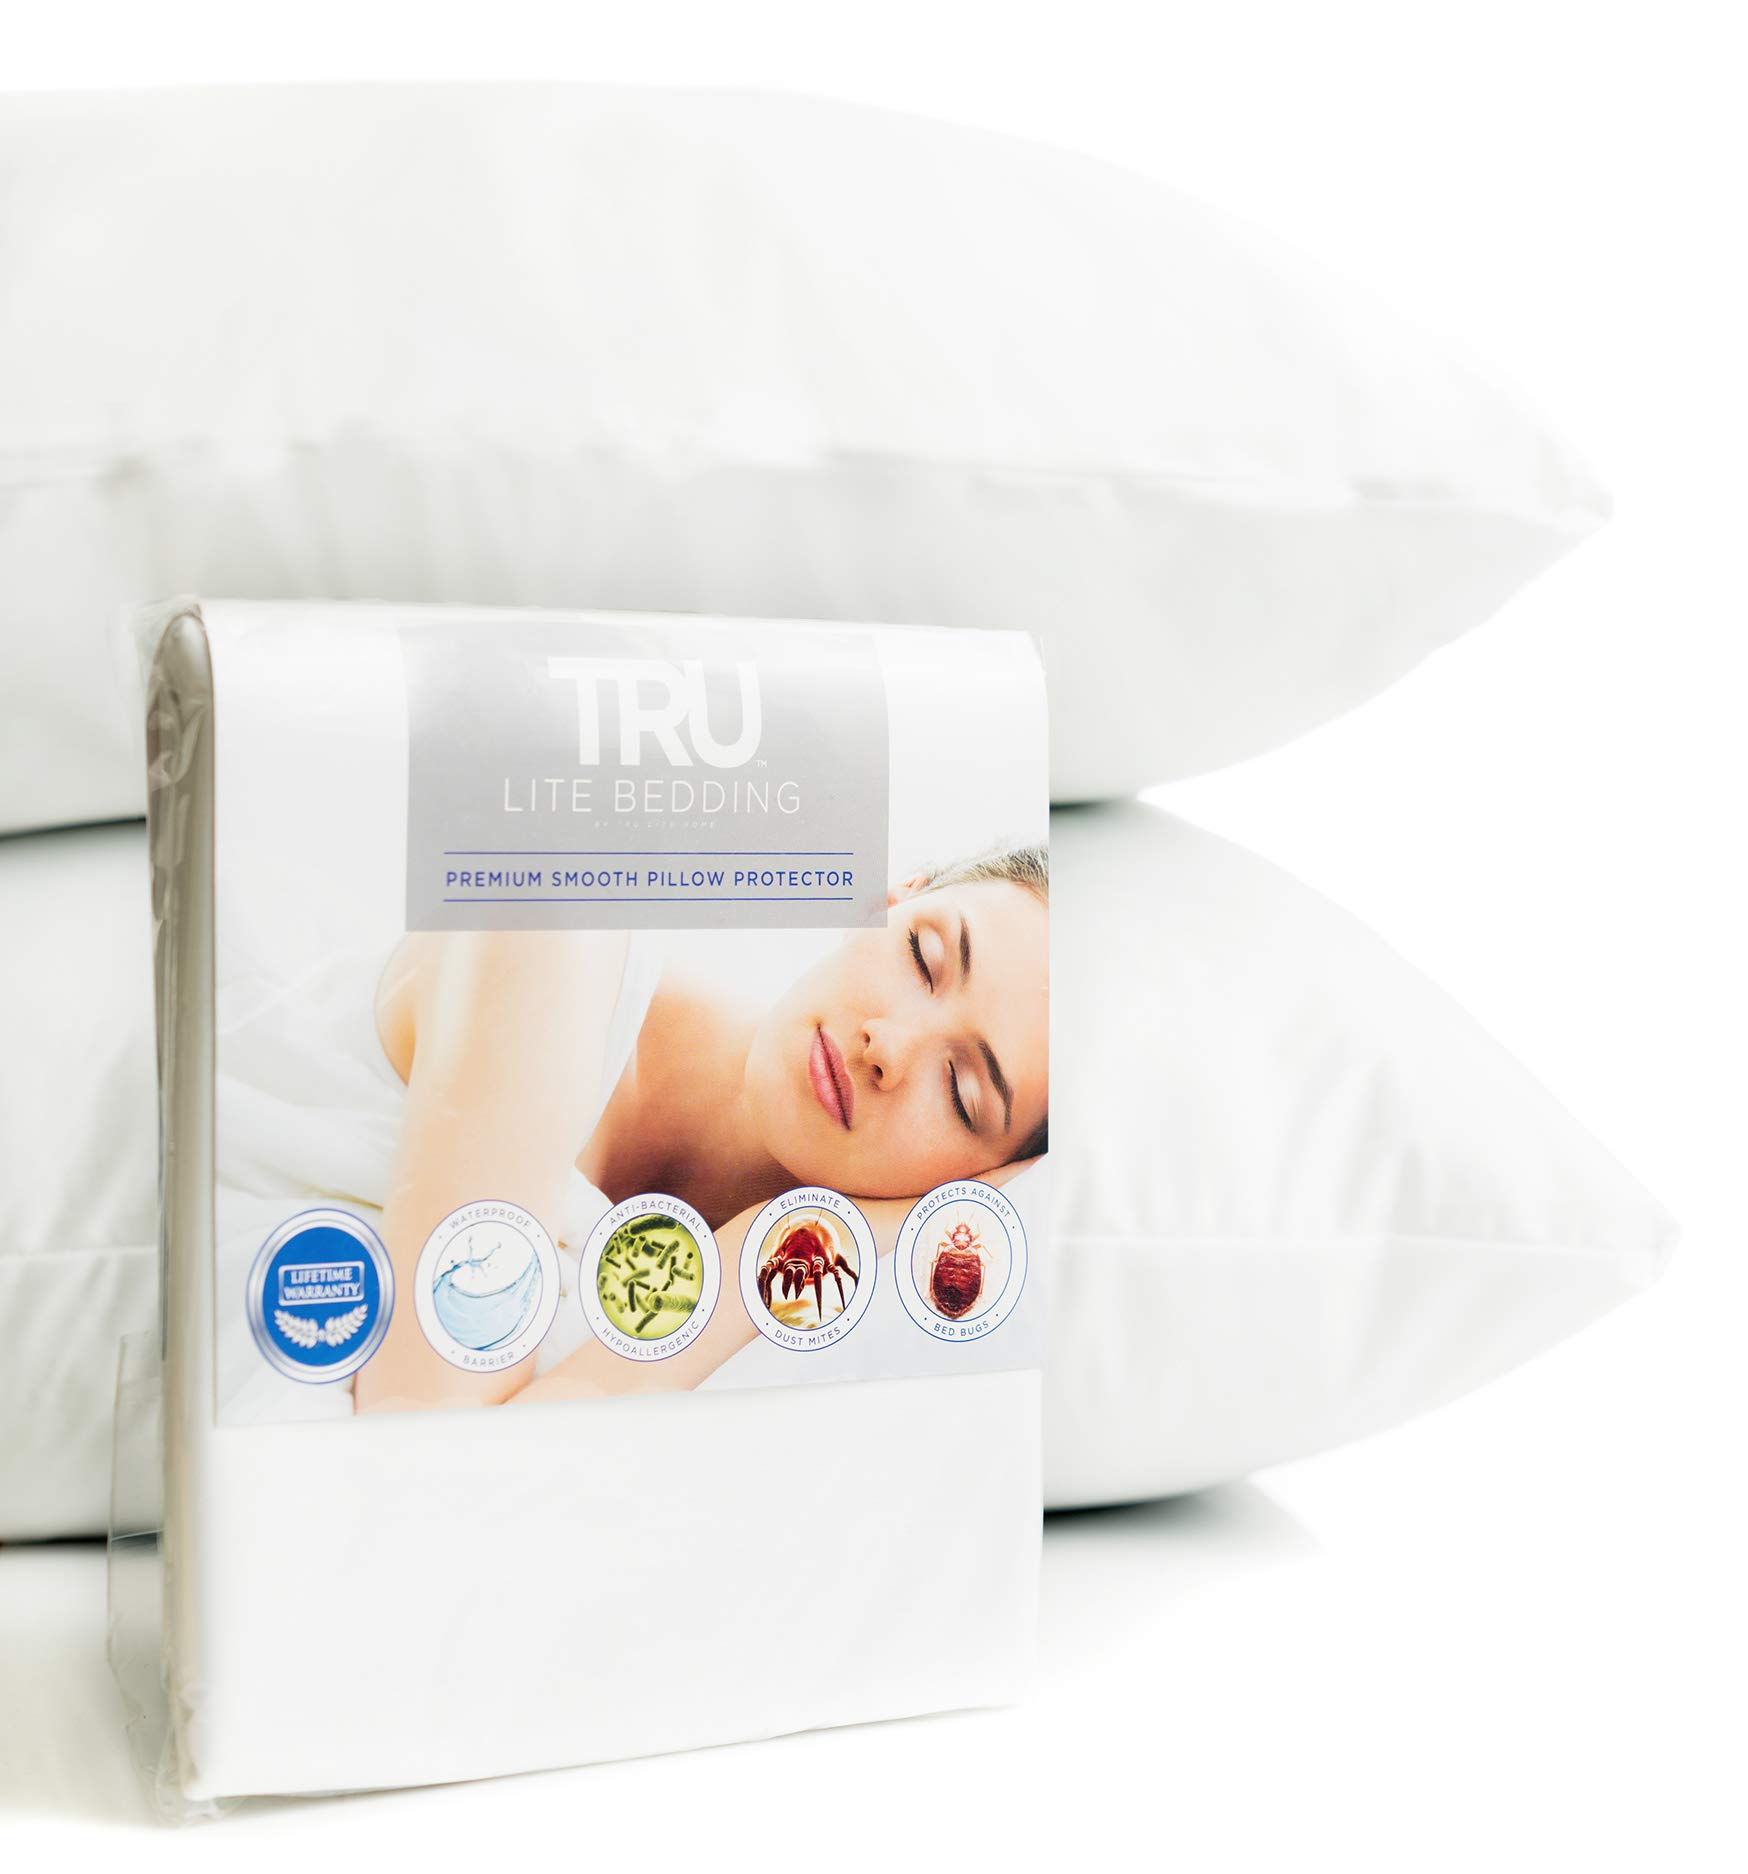 Anti Allergy Dust Mite Pillow Cases   Allergen and Bedbug Protector   Premium Breathable Smooth Surface Cover   100% Waterproof   Zippered Encasement for Bed Bugs   Set of 2   Standard Size by TRU Lite Bedding